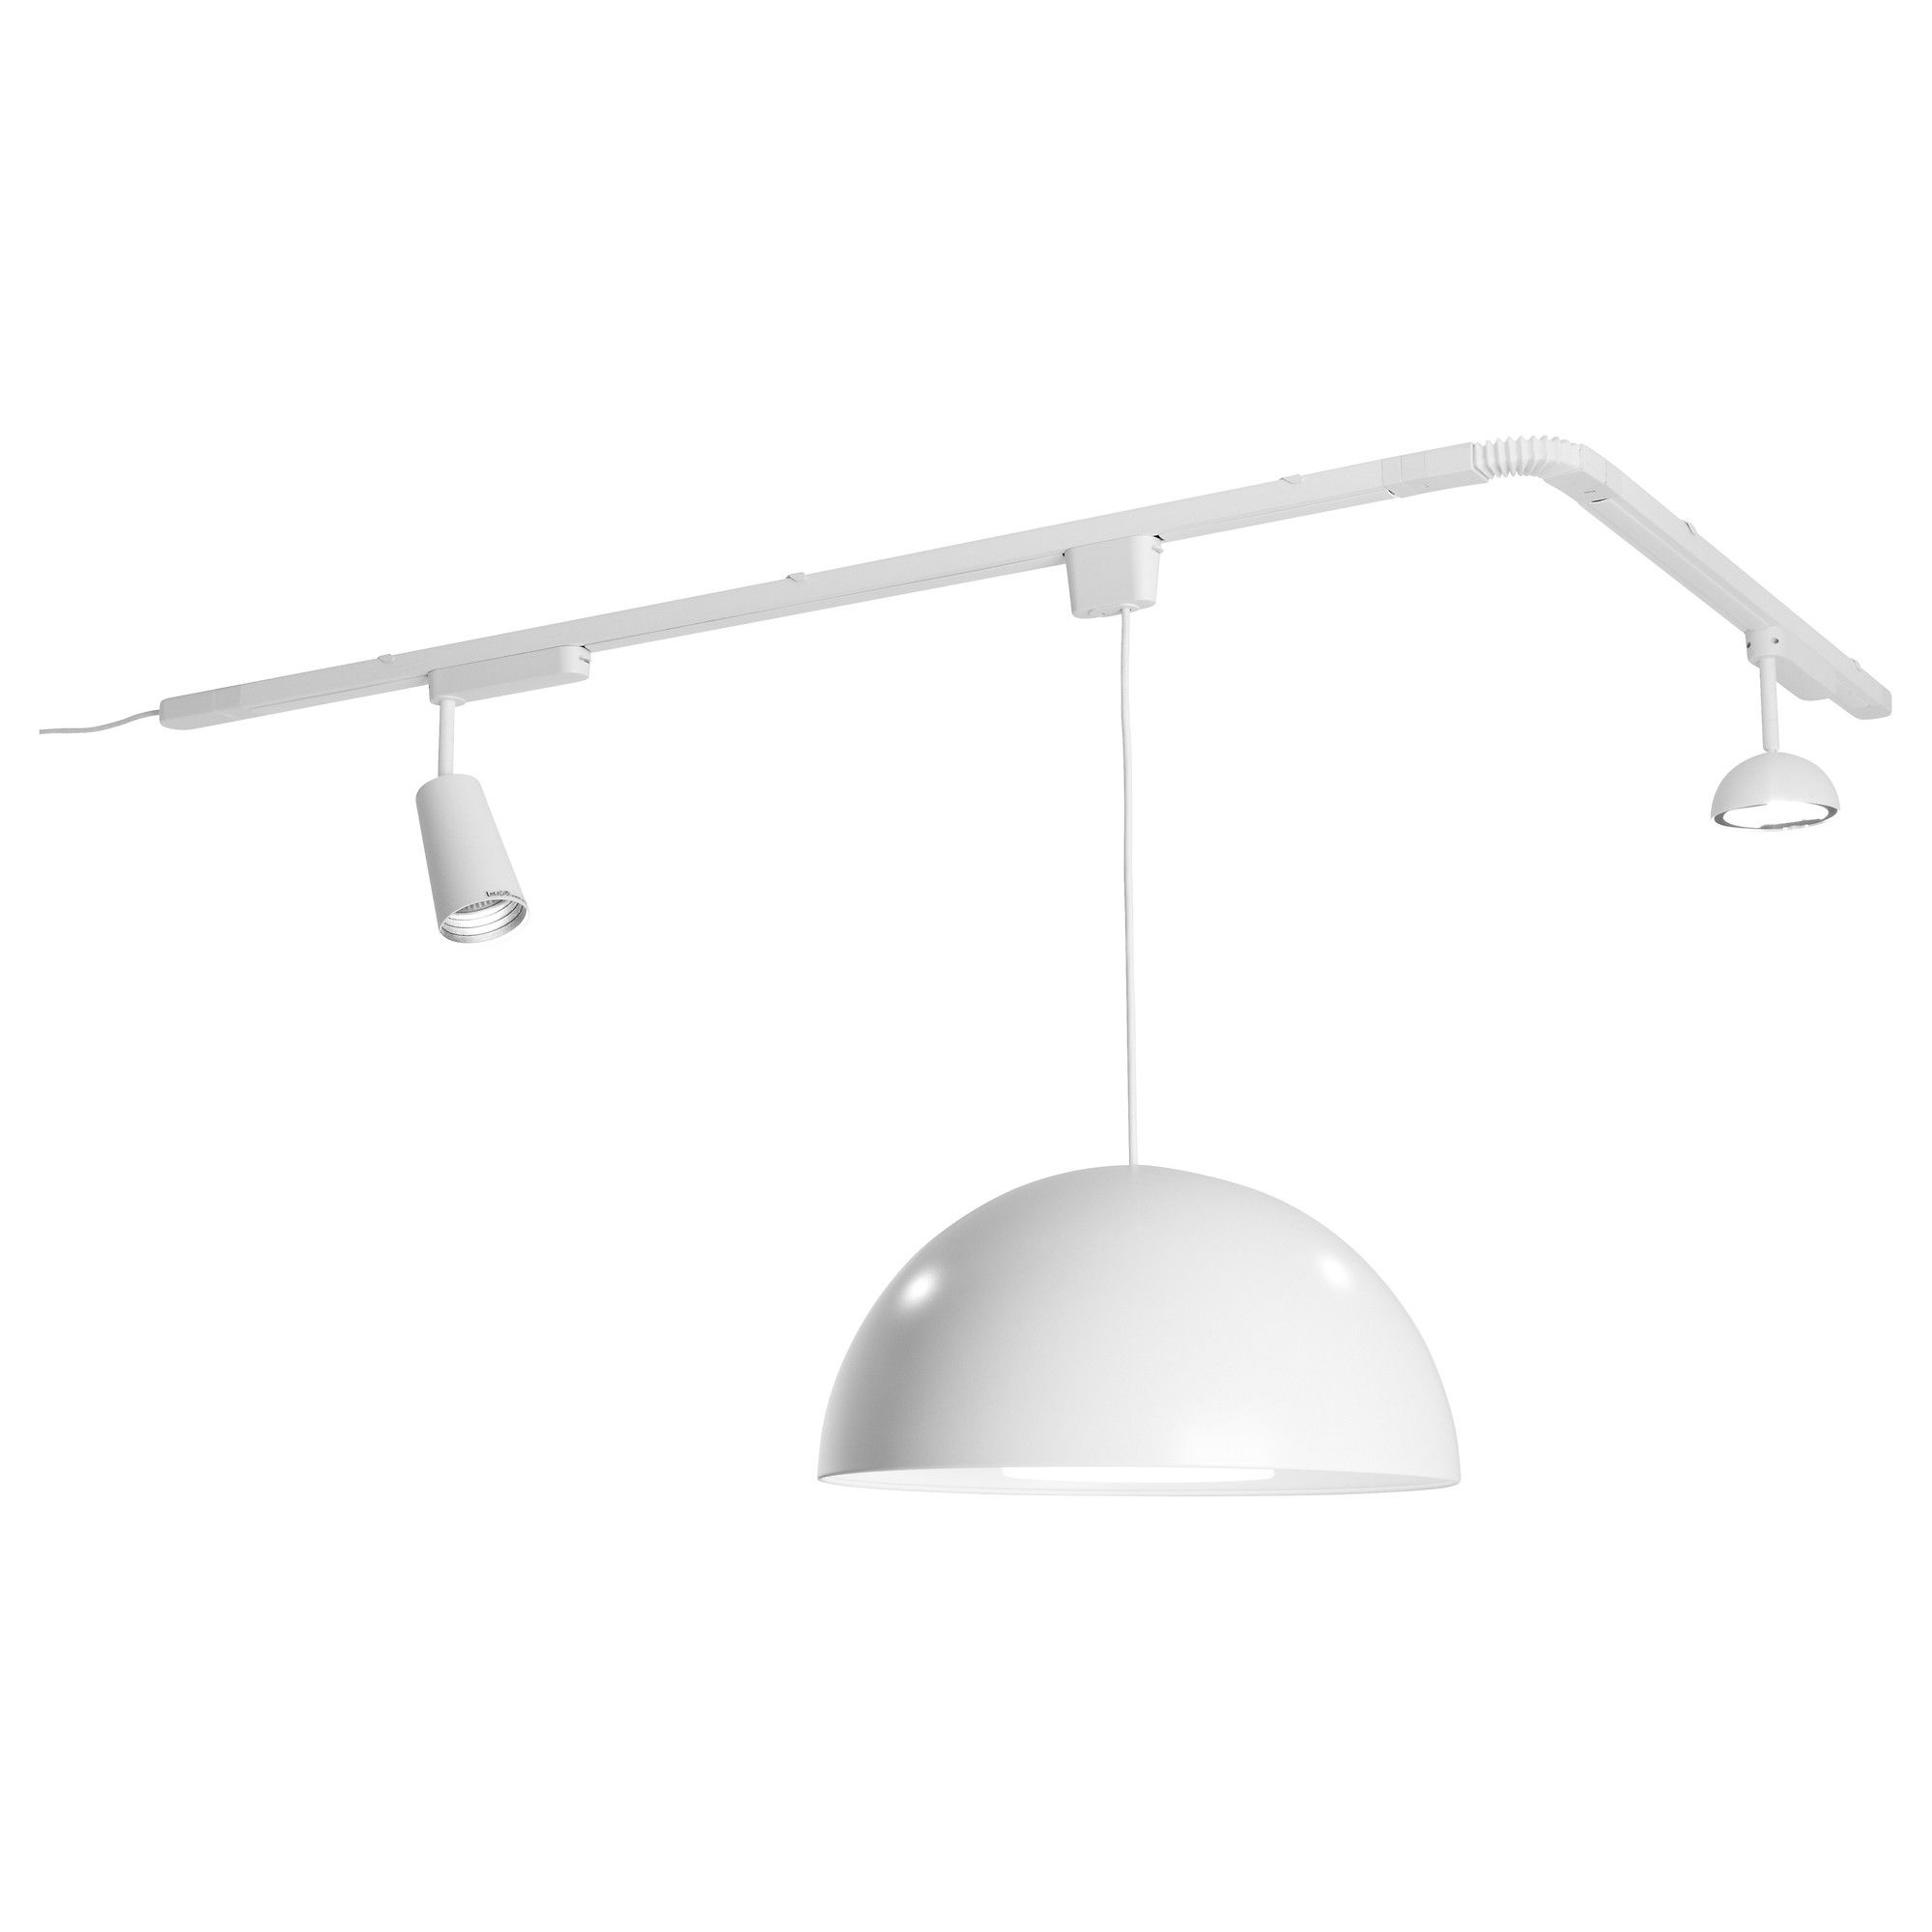 Ikea Us Furniture And Home Furnishings Track Lighting Best Bathroom Lighting Lamps Living Room